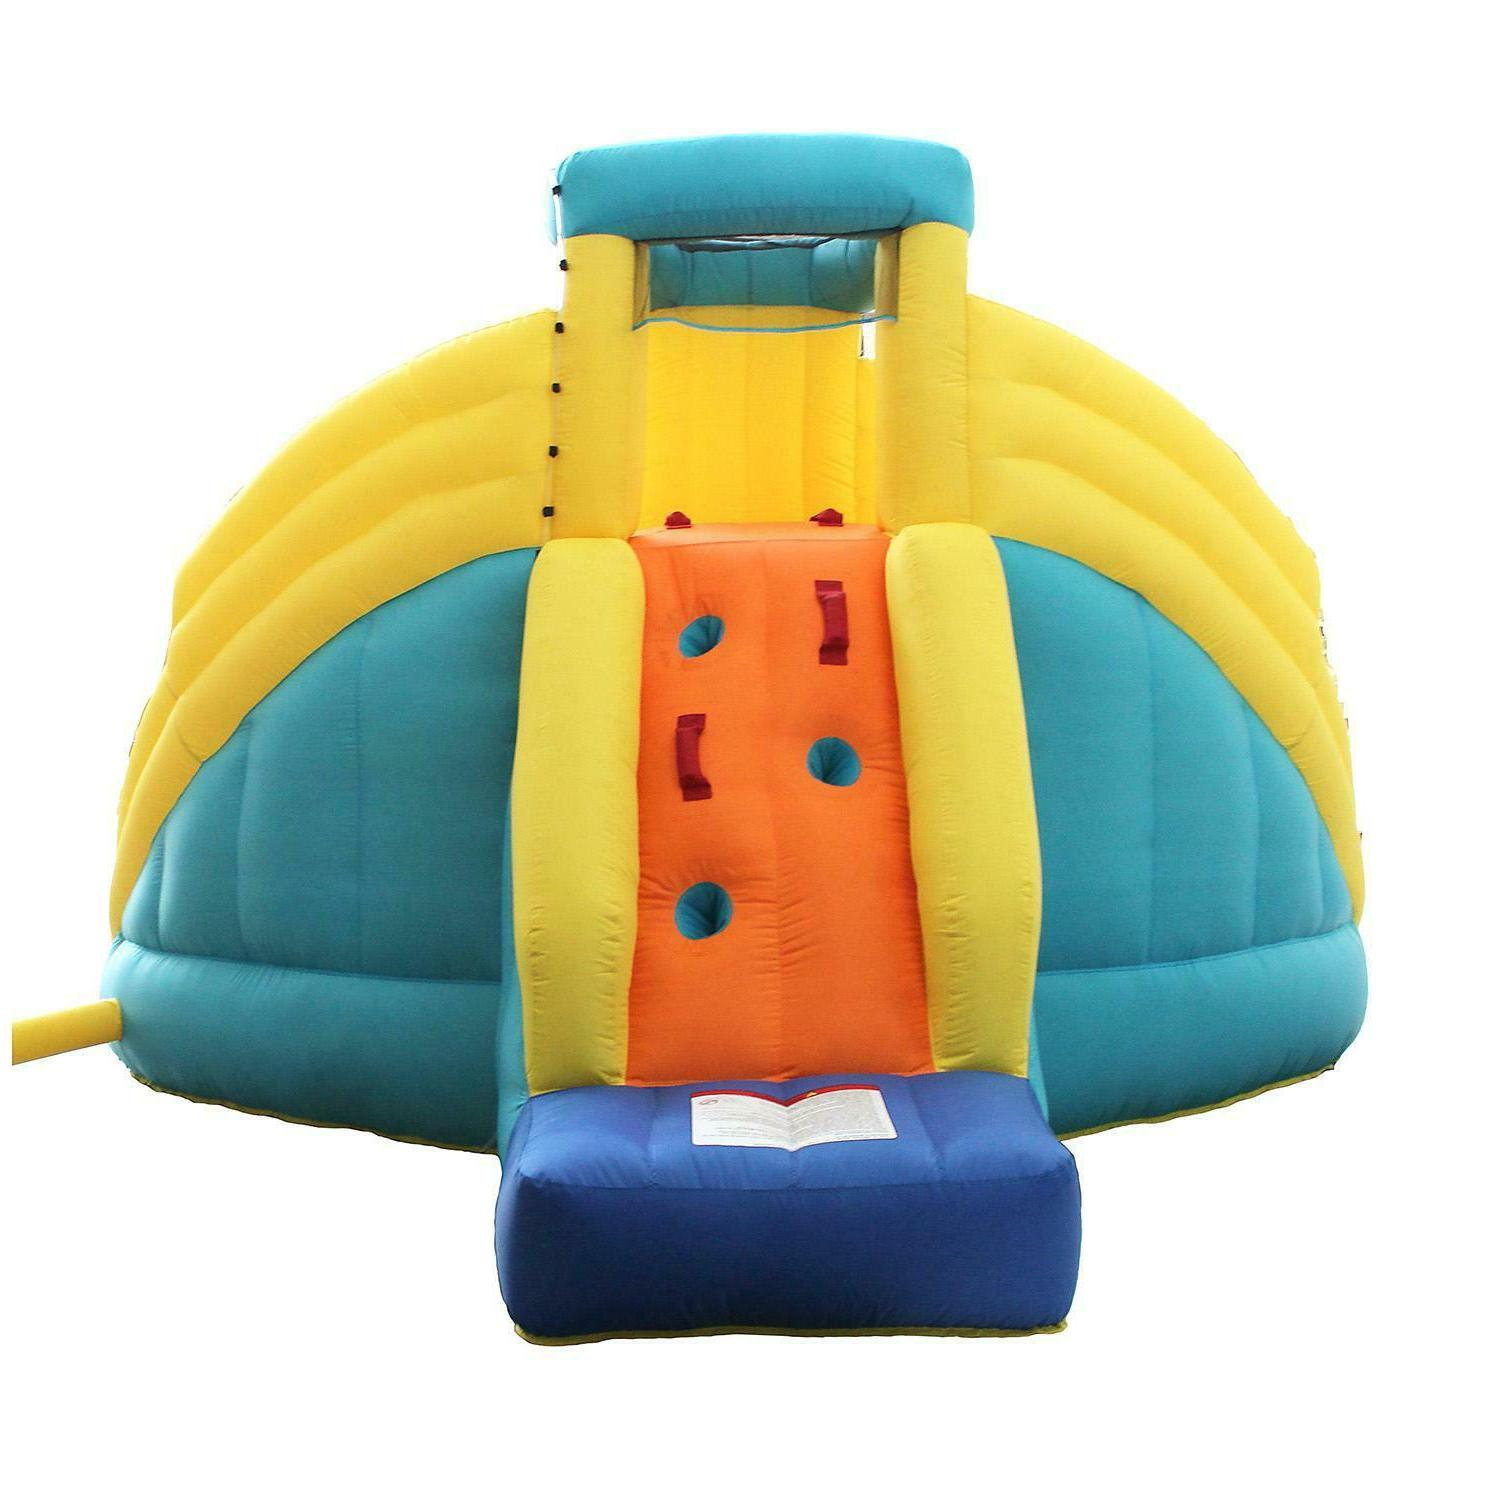 Castle Bounce Inflatable Park with Slide 12.8'